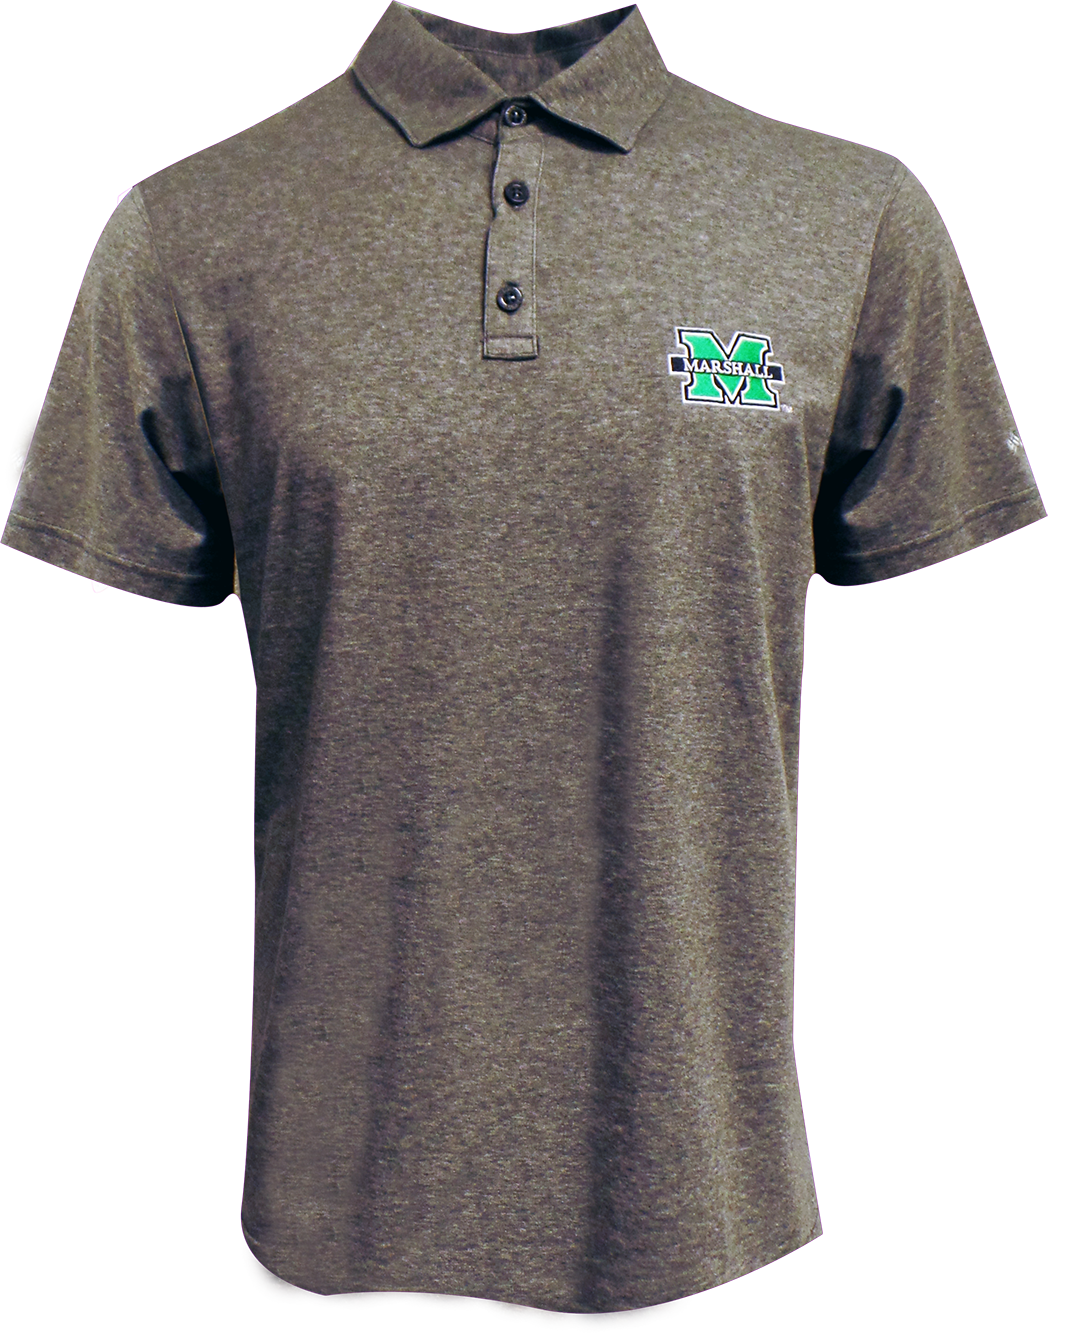 25610 <br>Columbia <br> MU Thistletown Polo <br> $49.99